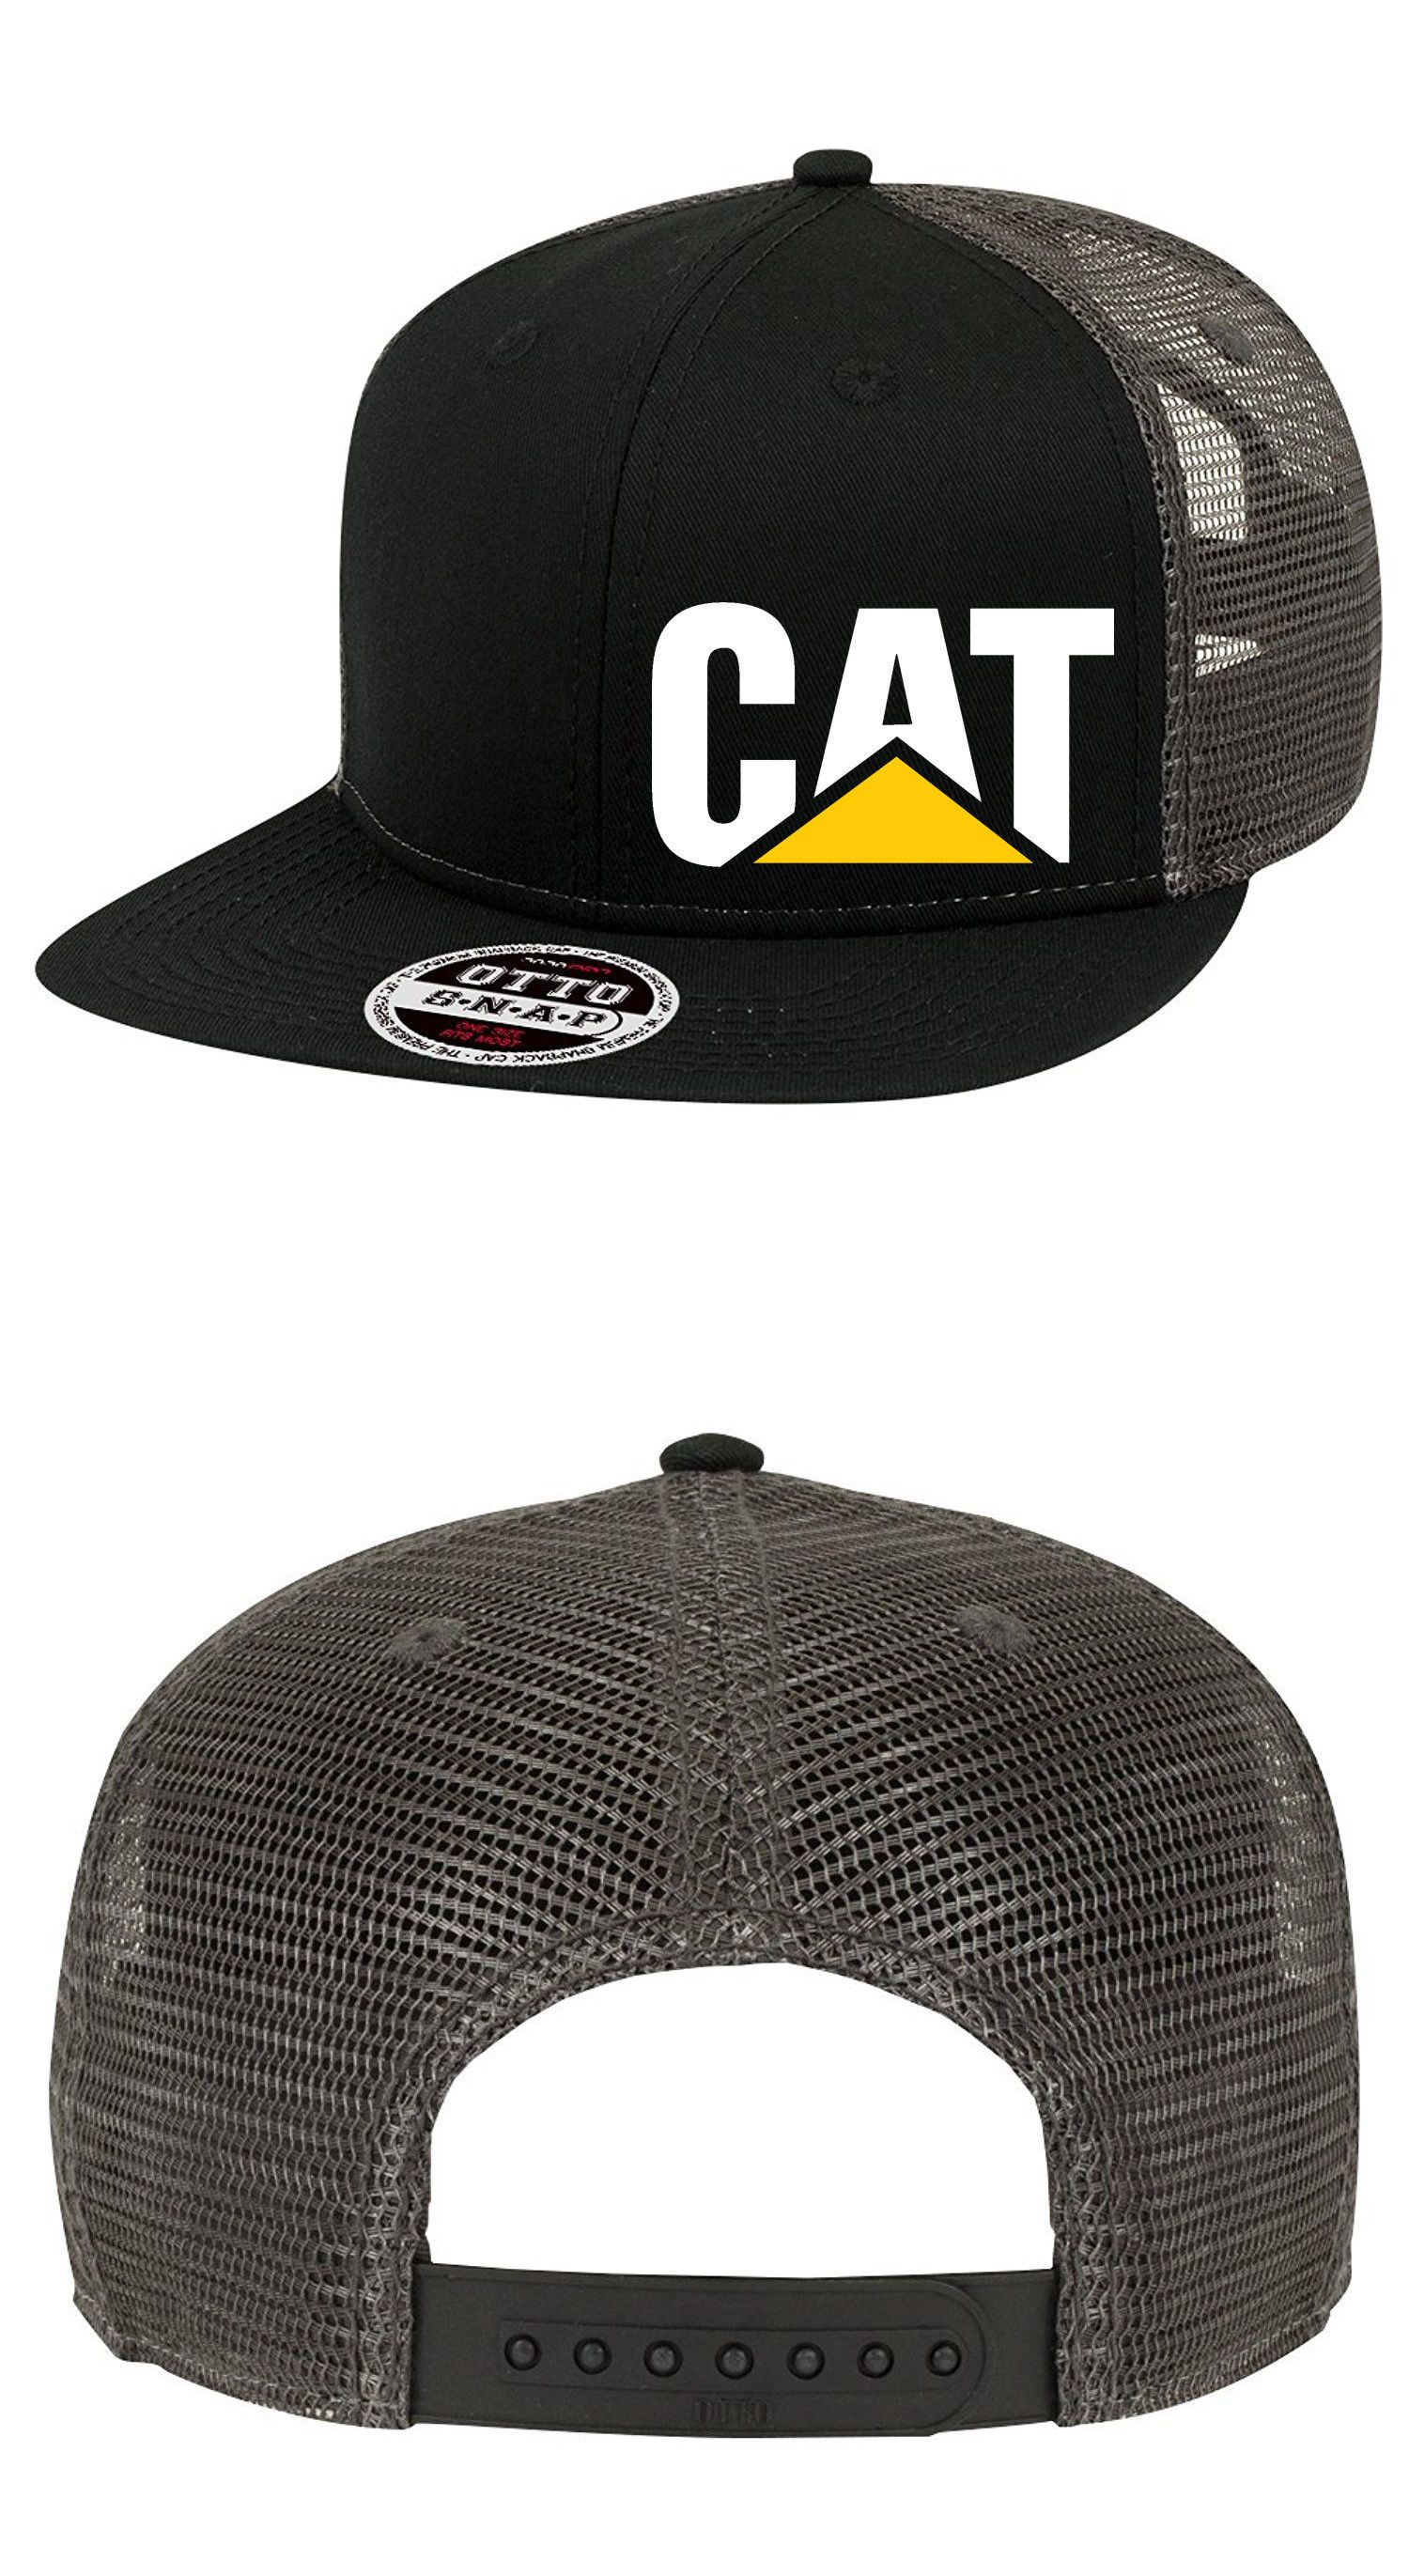 newest 524c3 f1579 Hats 52365  Cat Trucker Hat Mesh Caterpillar Construction Flat Bill  Snapback Flexfit Cap New -  BUY IT NOW ONLY   10.99 on  eBay  trucker   caterpillar ...